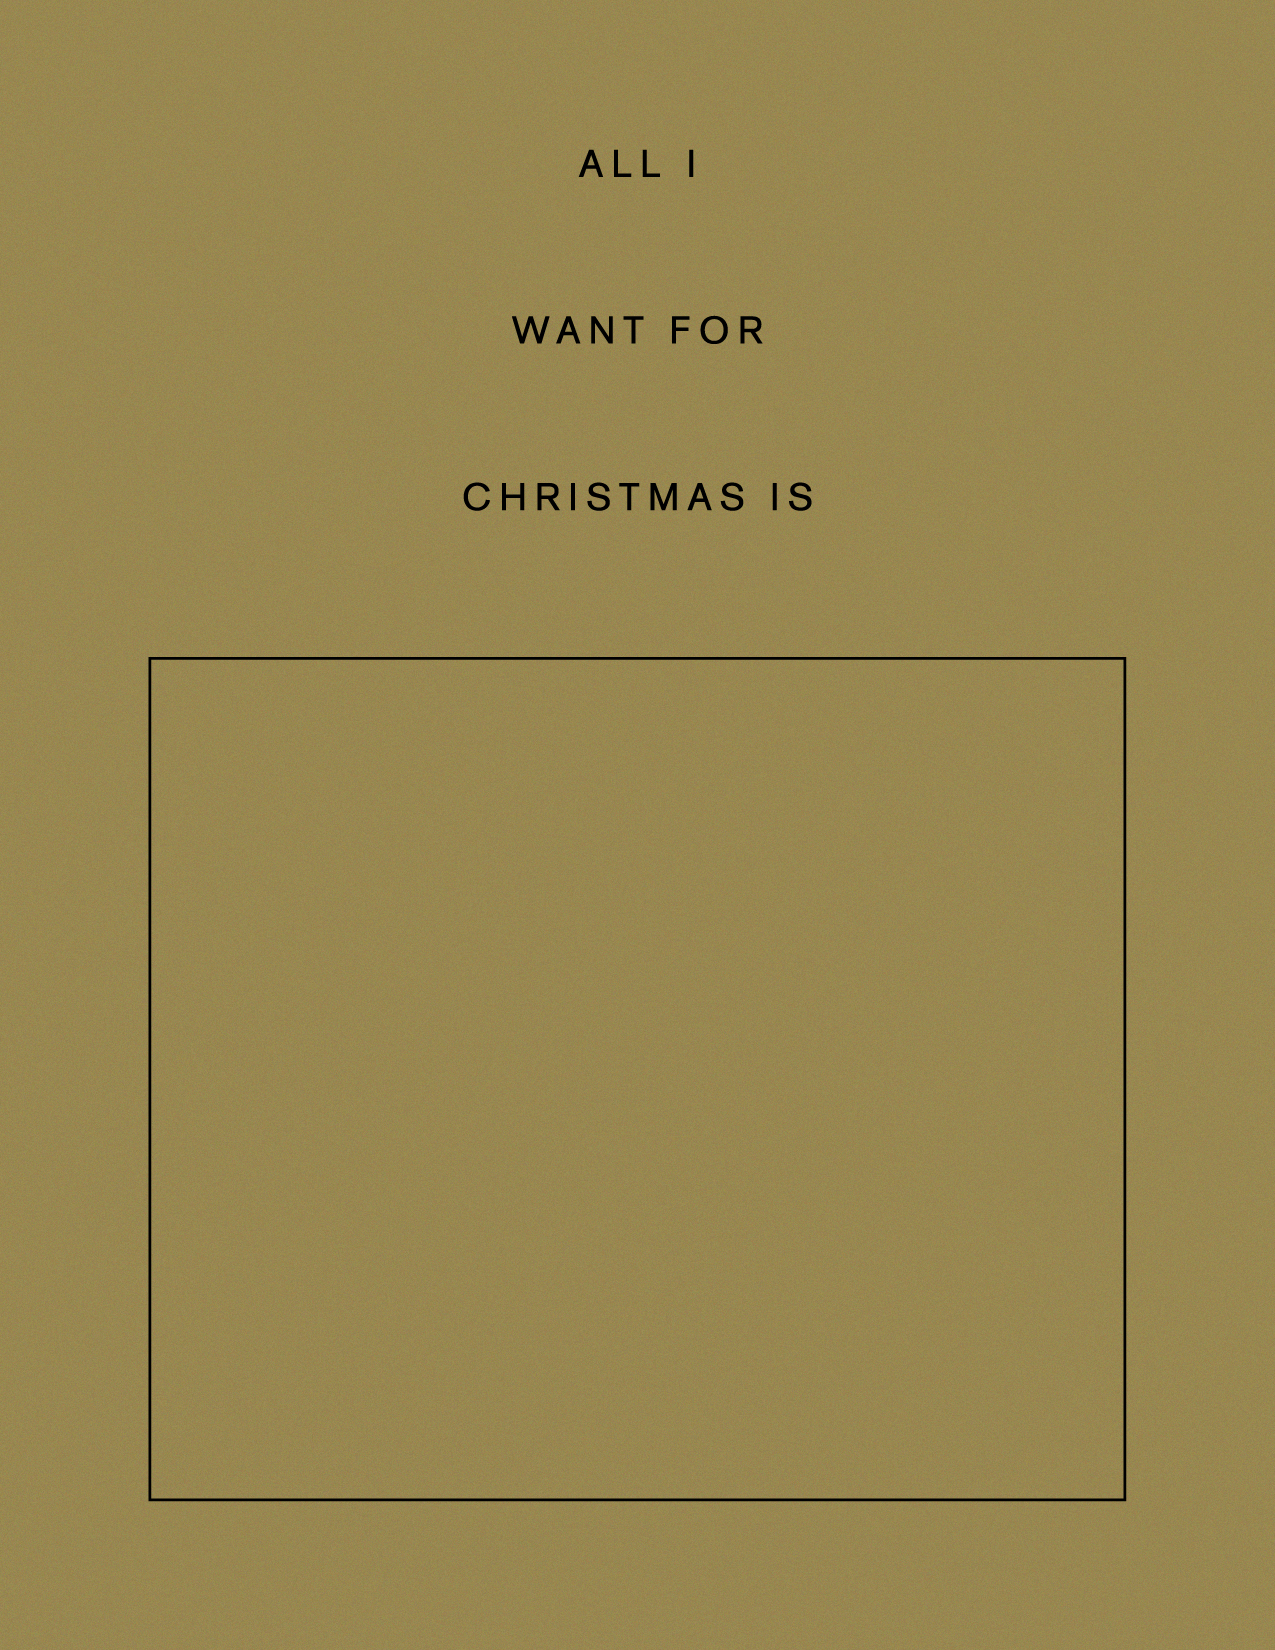 12 All I Want For Christmas.png